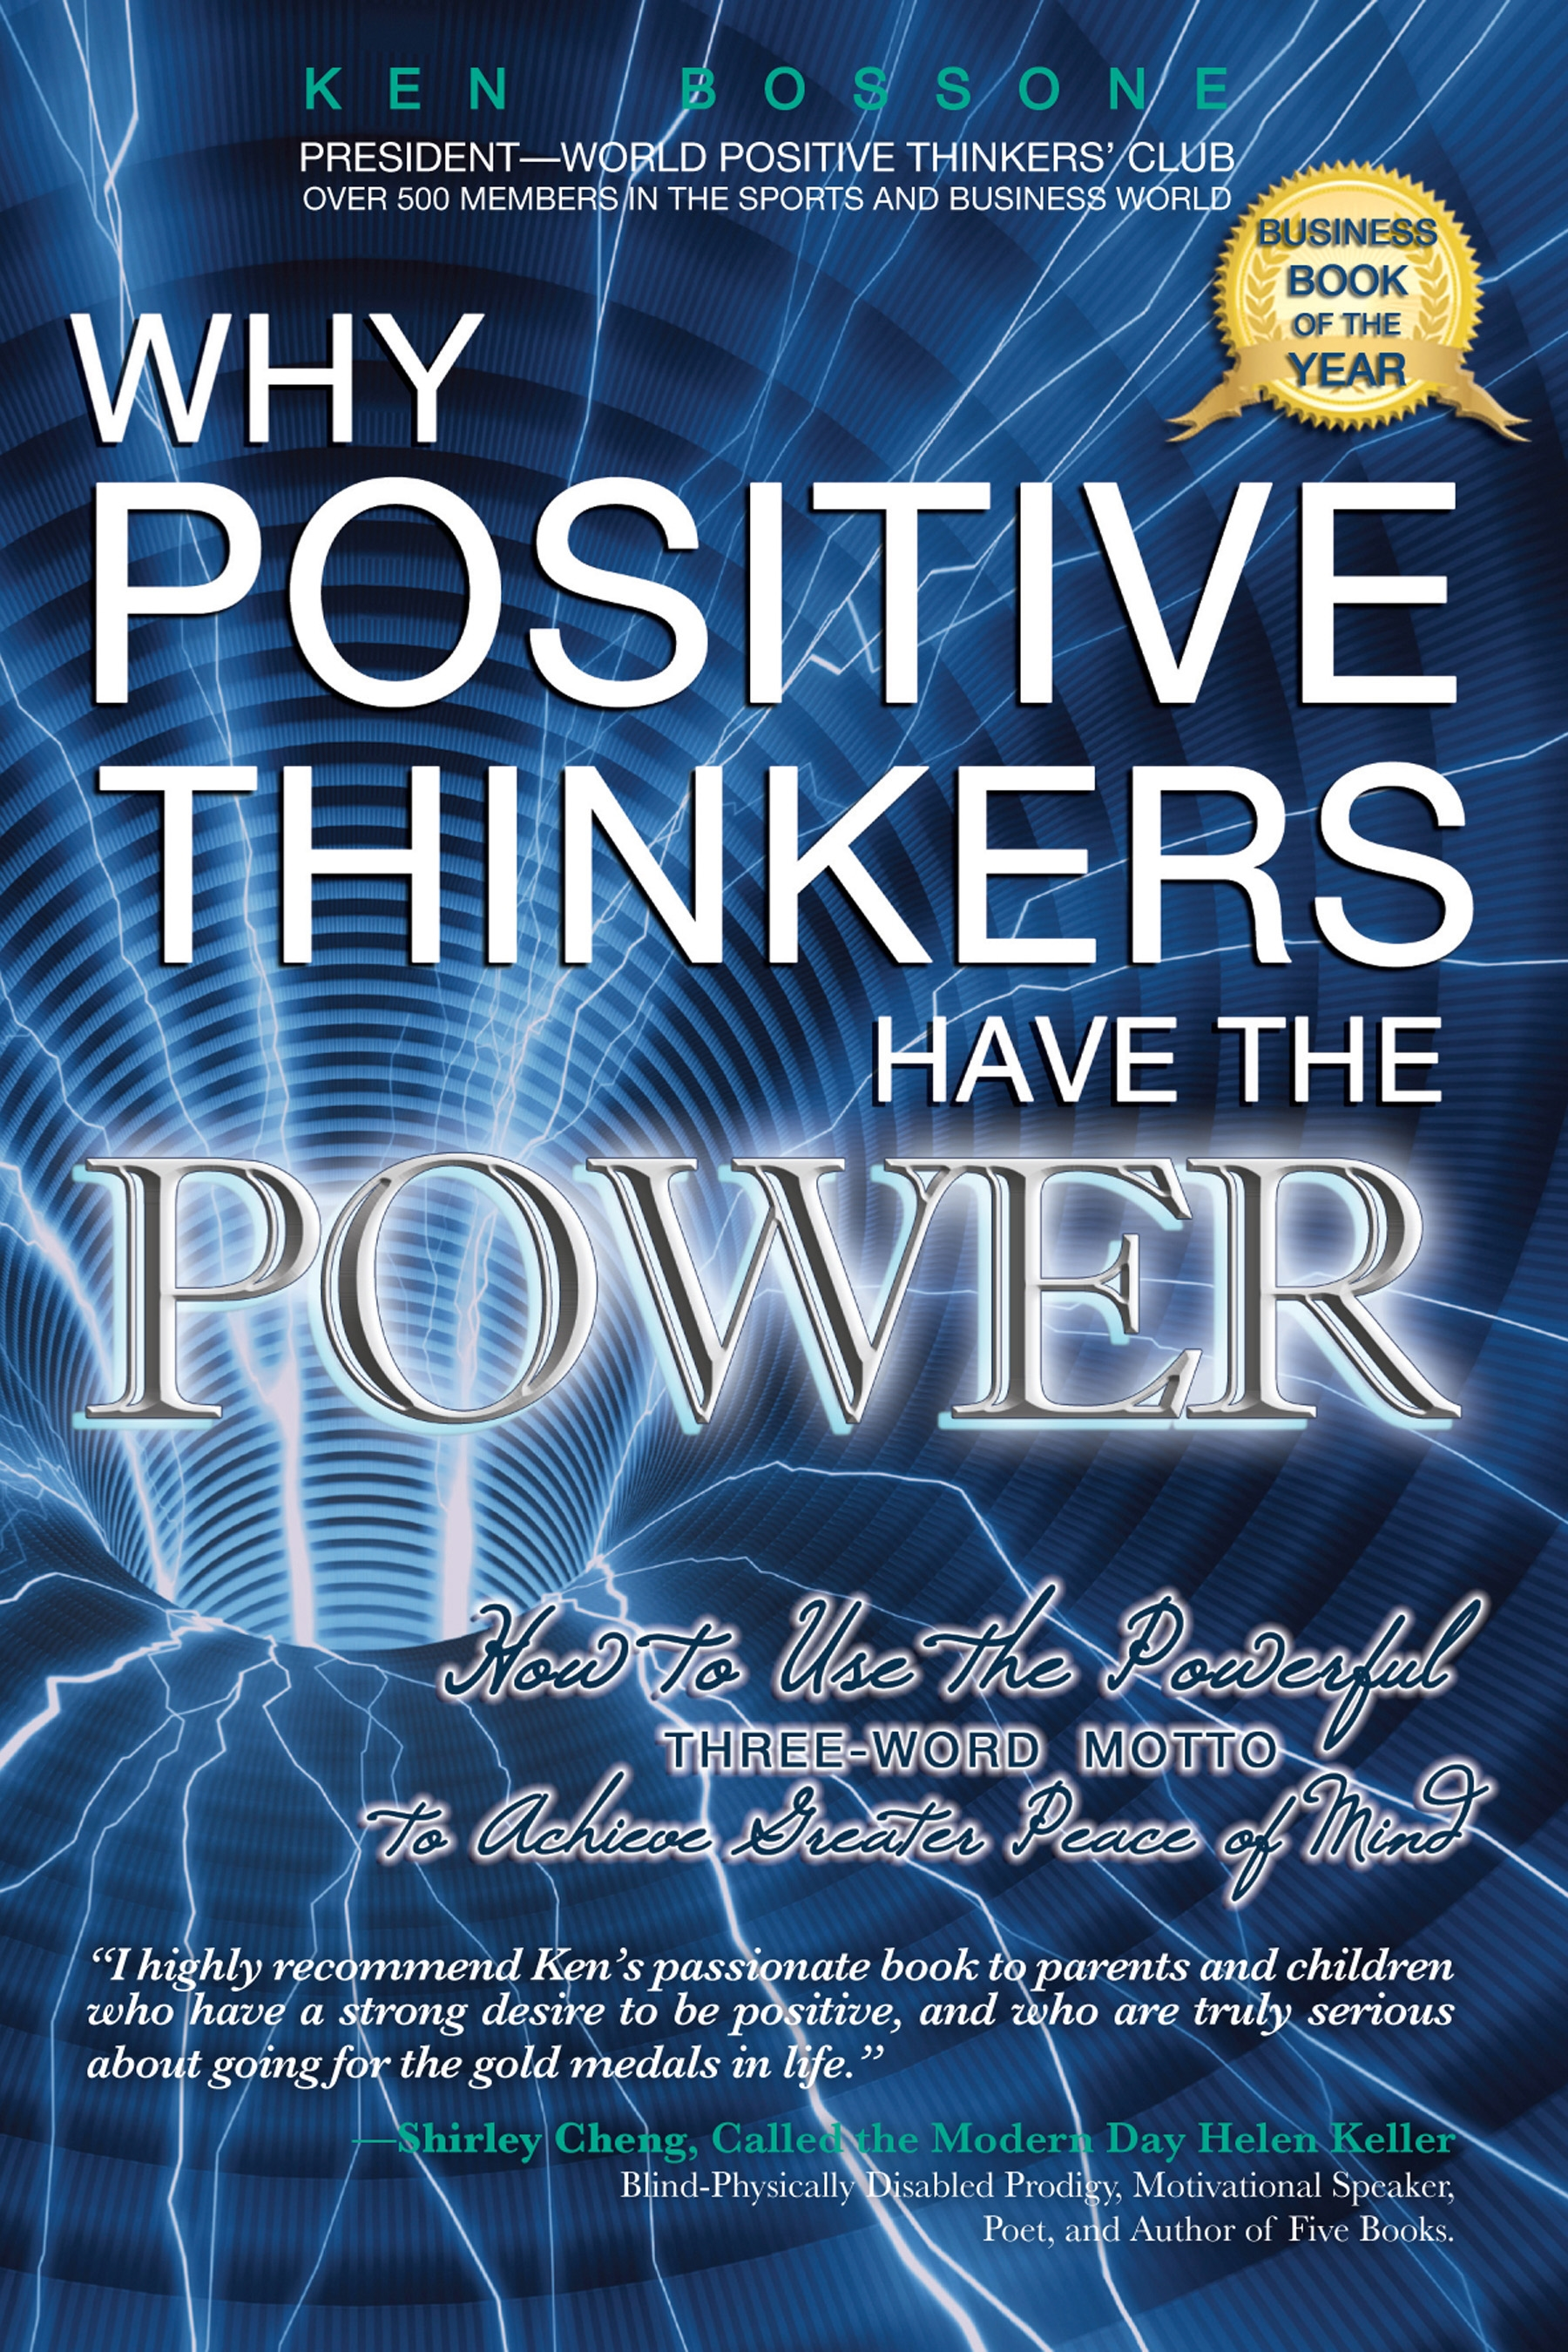 Why Positive Thinkers Have The Power